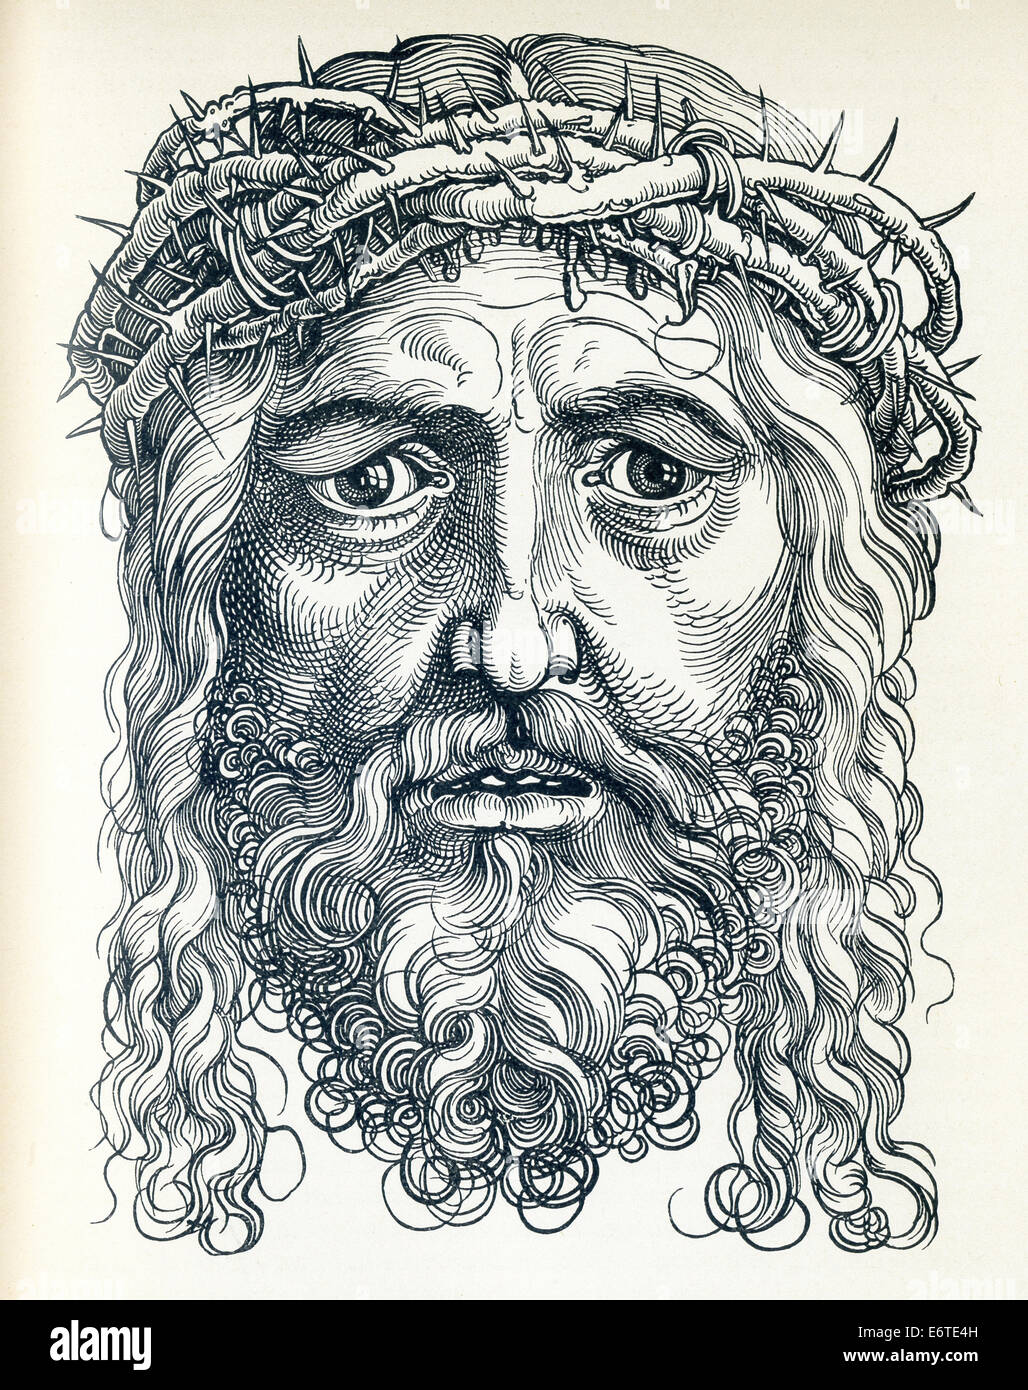 This head of Jesus Christ was done by Albrecht Durer, a German painter and engraver, who lived from 1471 to 1528. - Stock Image